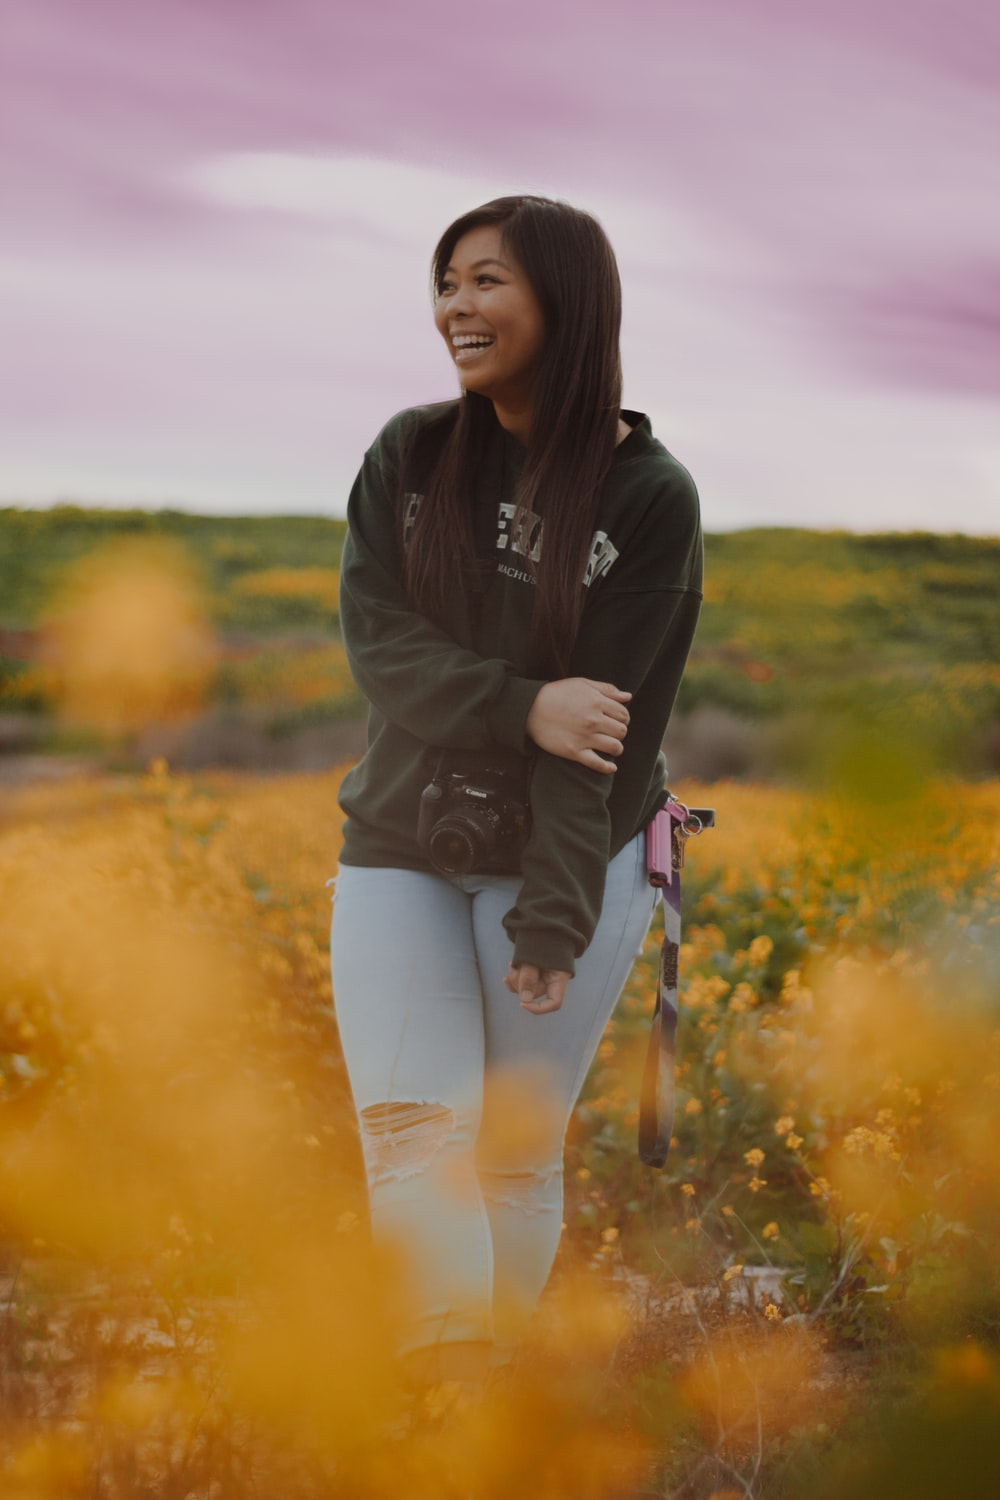 woman in black jacket and blue denim fitted jeans standing in middle of flower field smiling during daytime